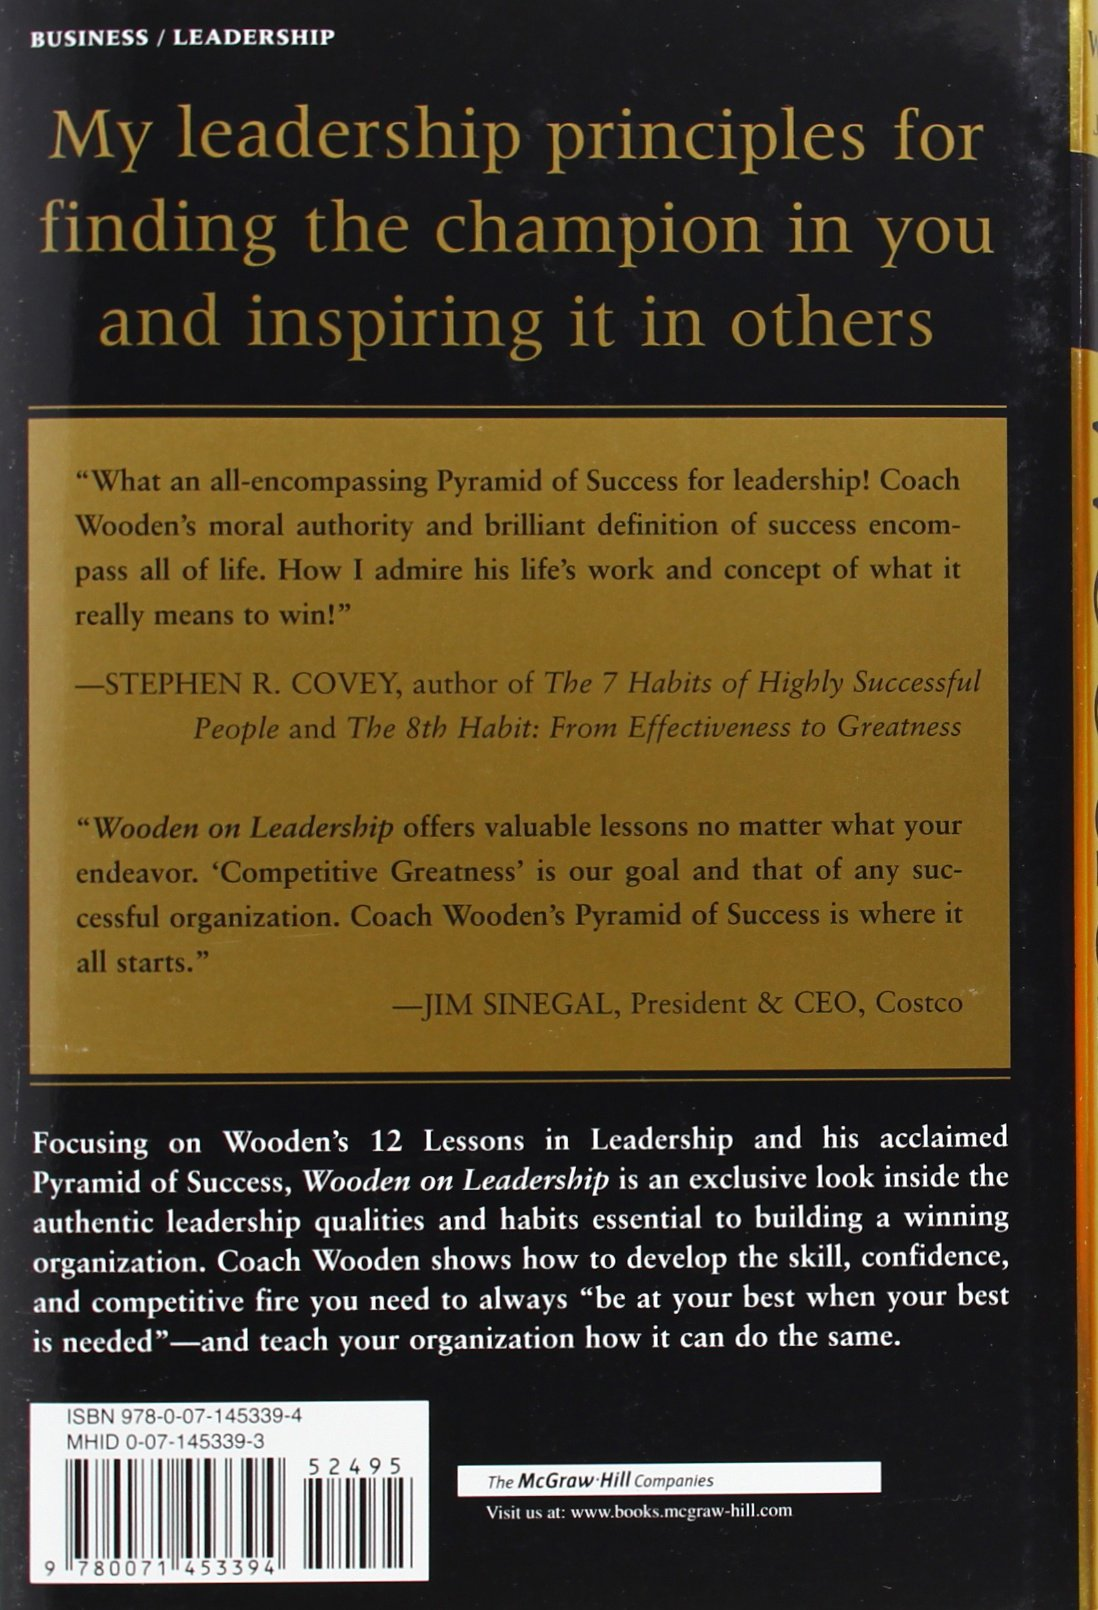 wooden on leadership how to create a winning organization john wooden on leadership how to create a winning organization john wooden steve jamison 8580001072067 amazon com books